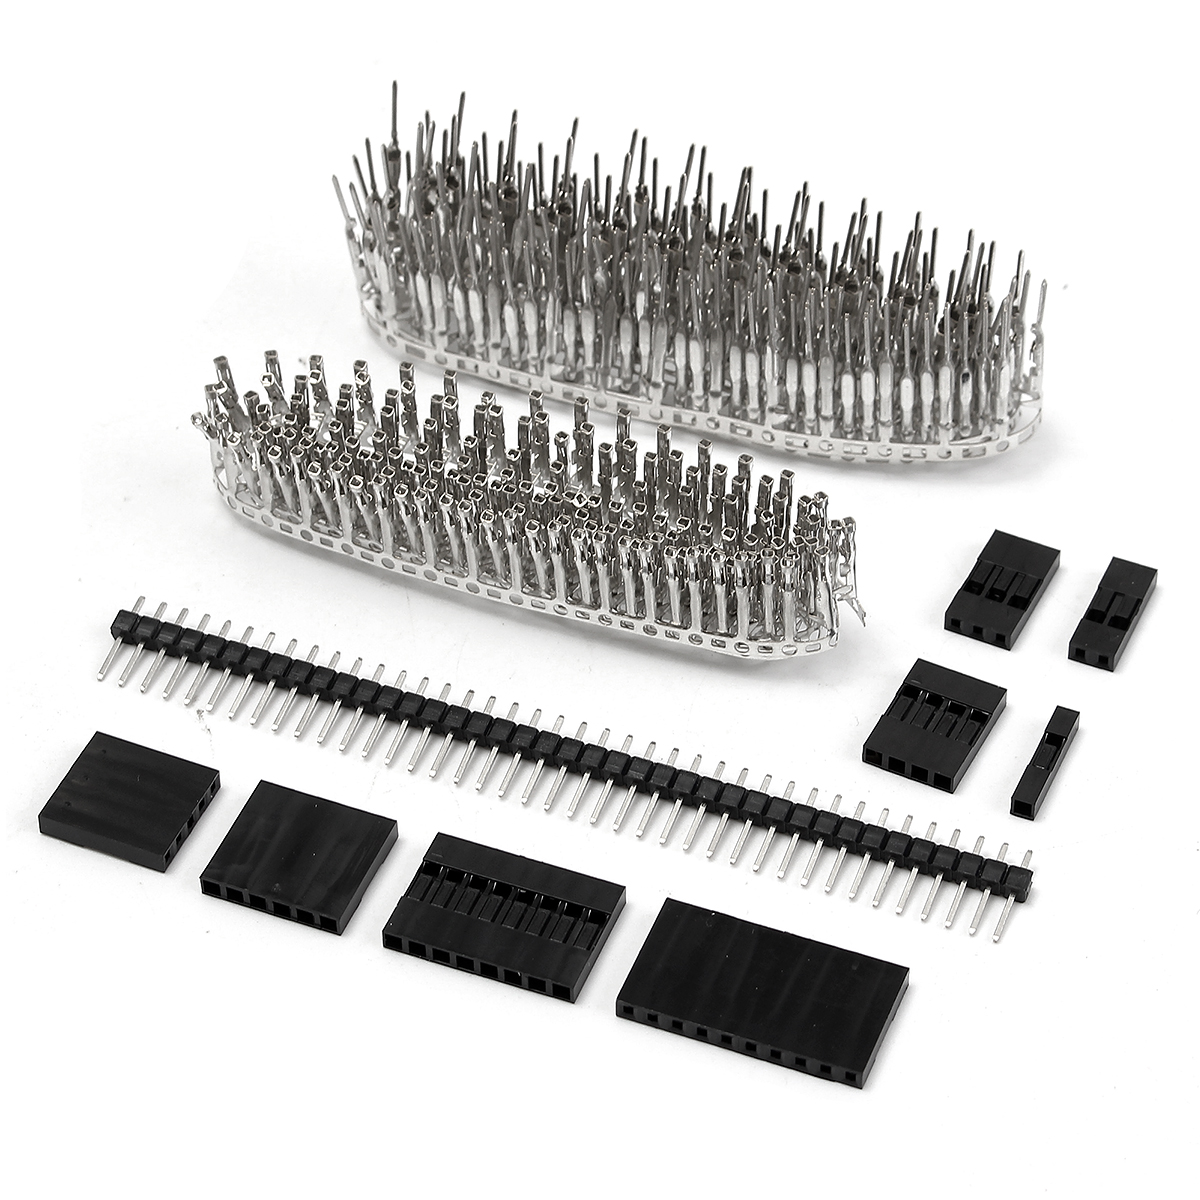 Geekcreit® 1450pcs 2.54mm Male Female Dupont Wire Jumper With Pin Header Connector Housing Kit